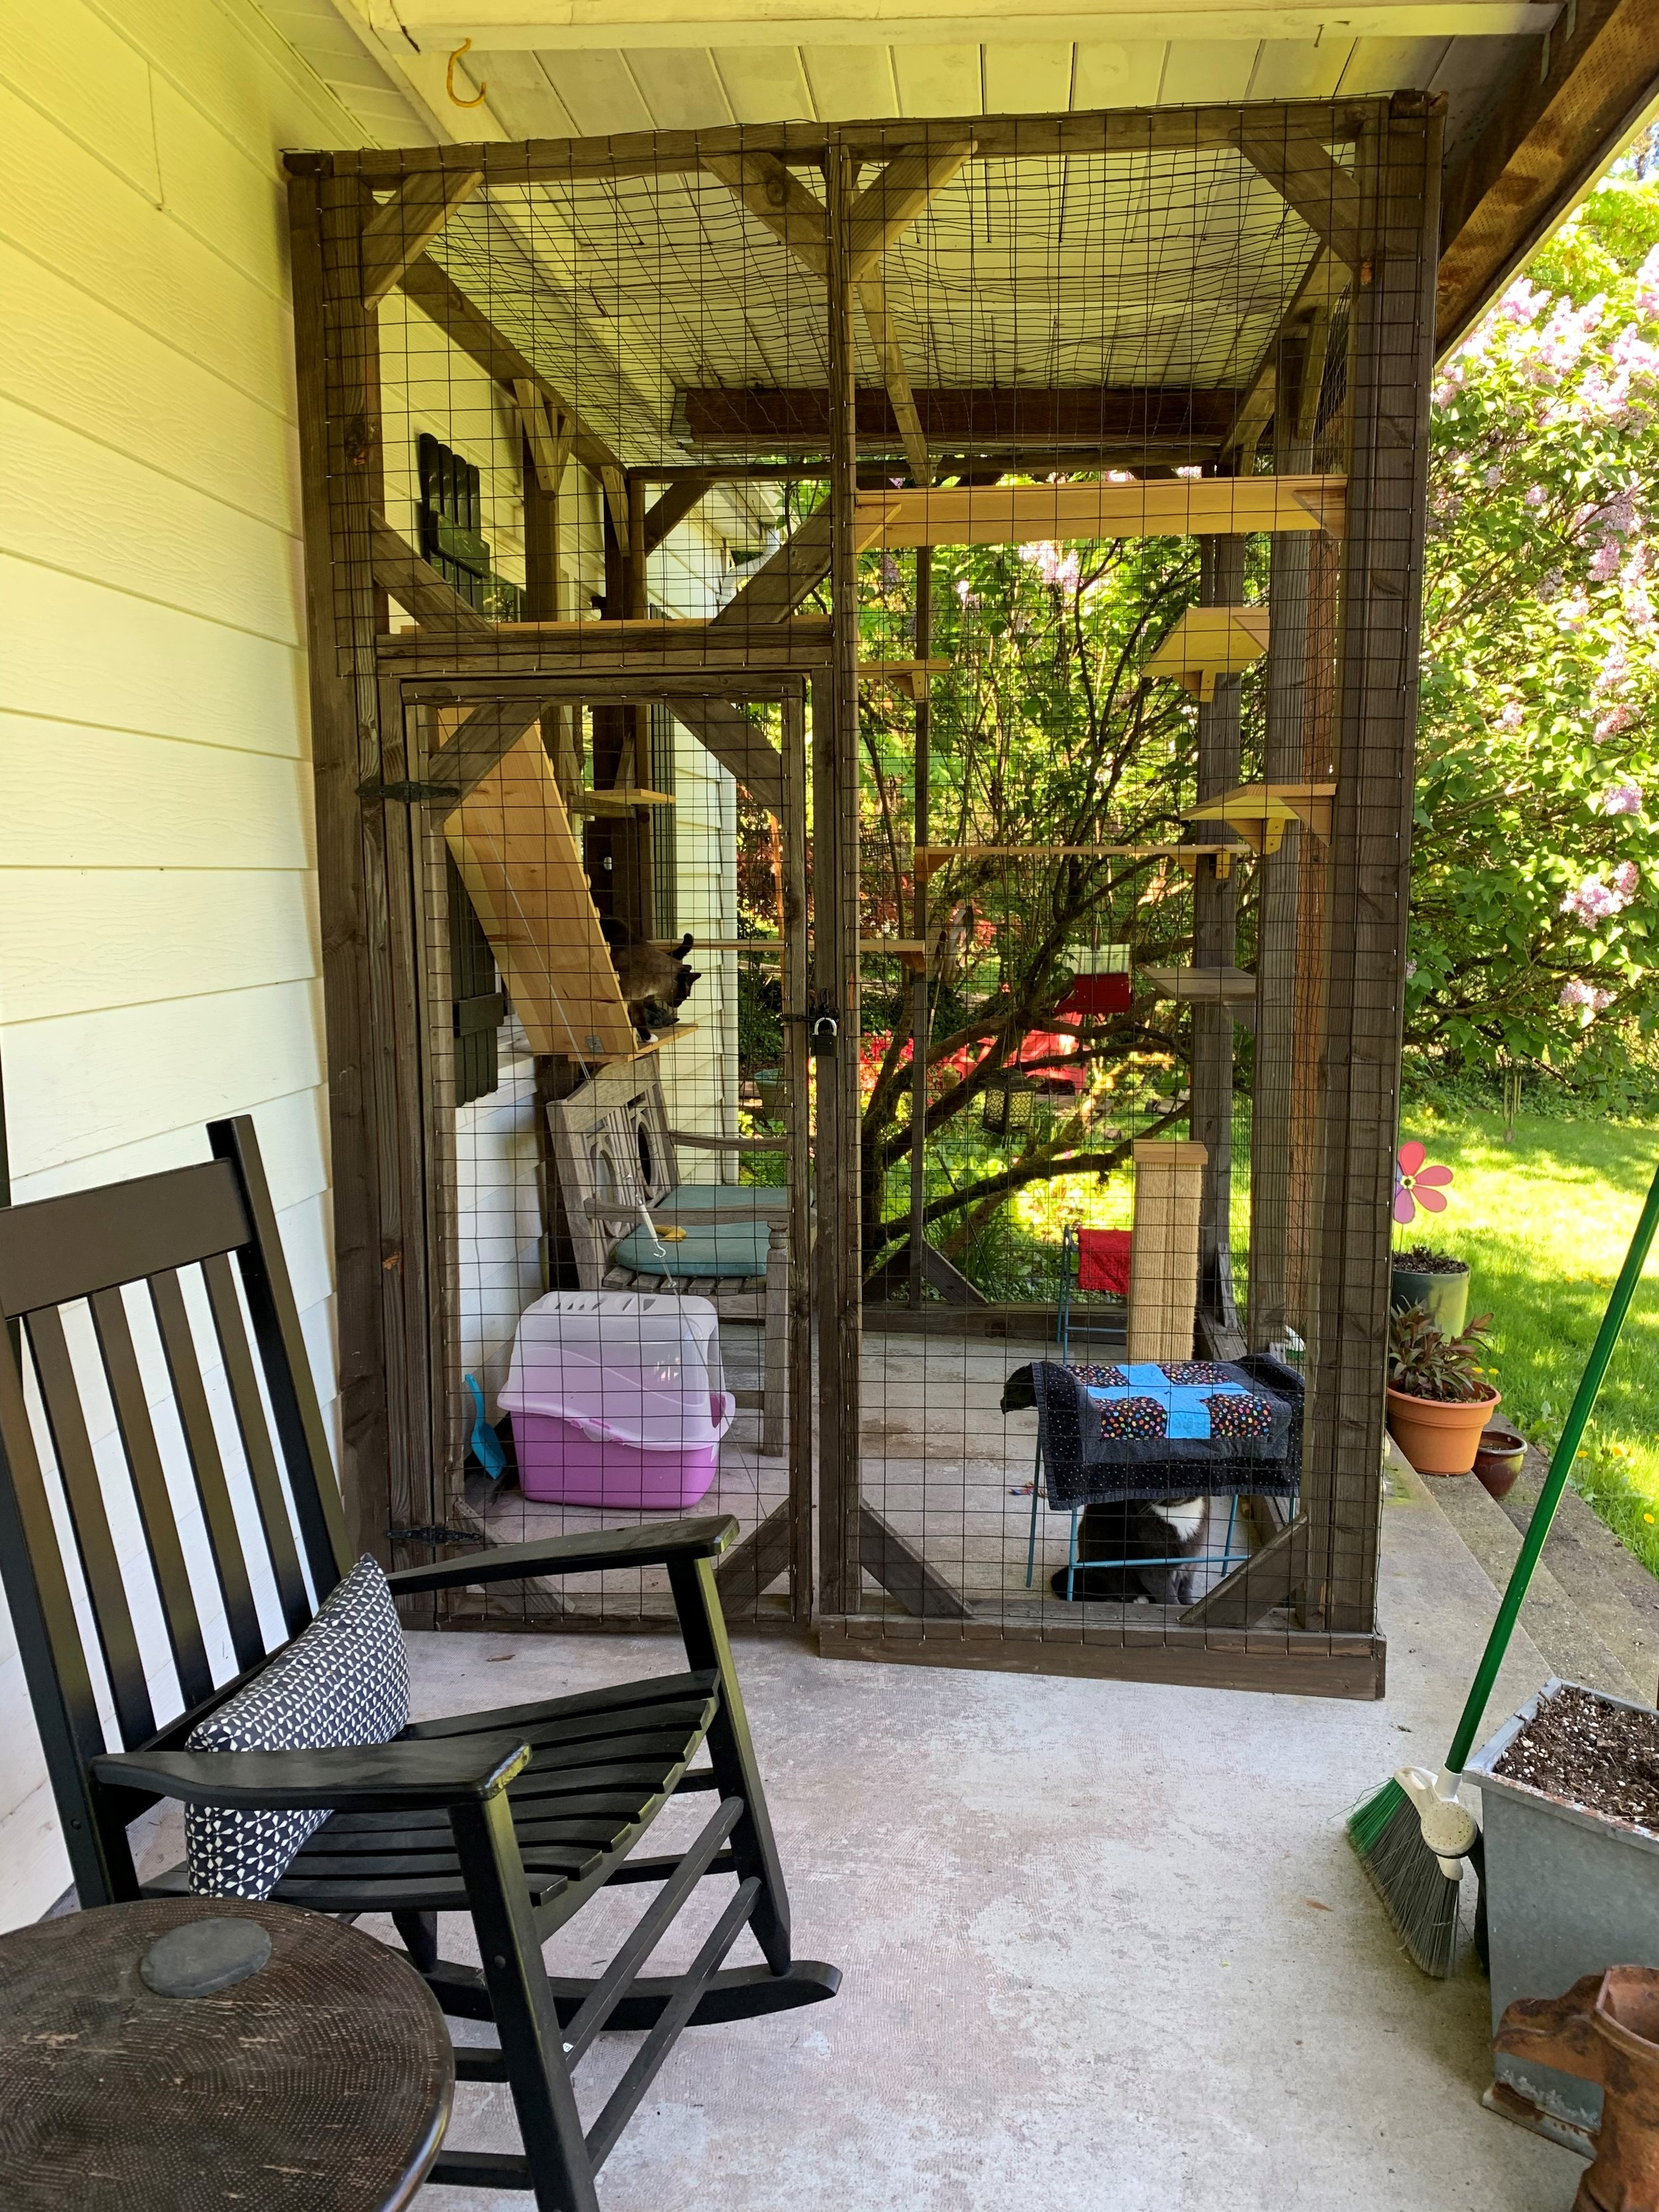 The Weisenberger catio used the existing overhang of a porch. They look forward to expanding their catio even more this summer.